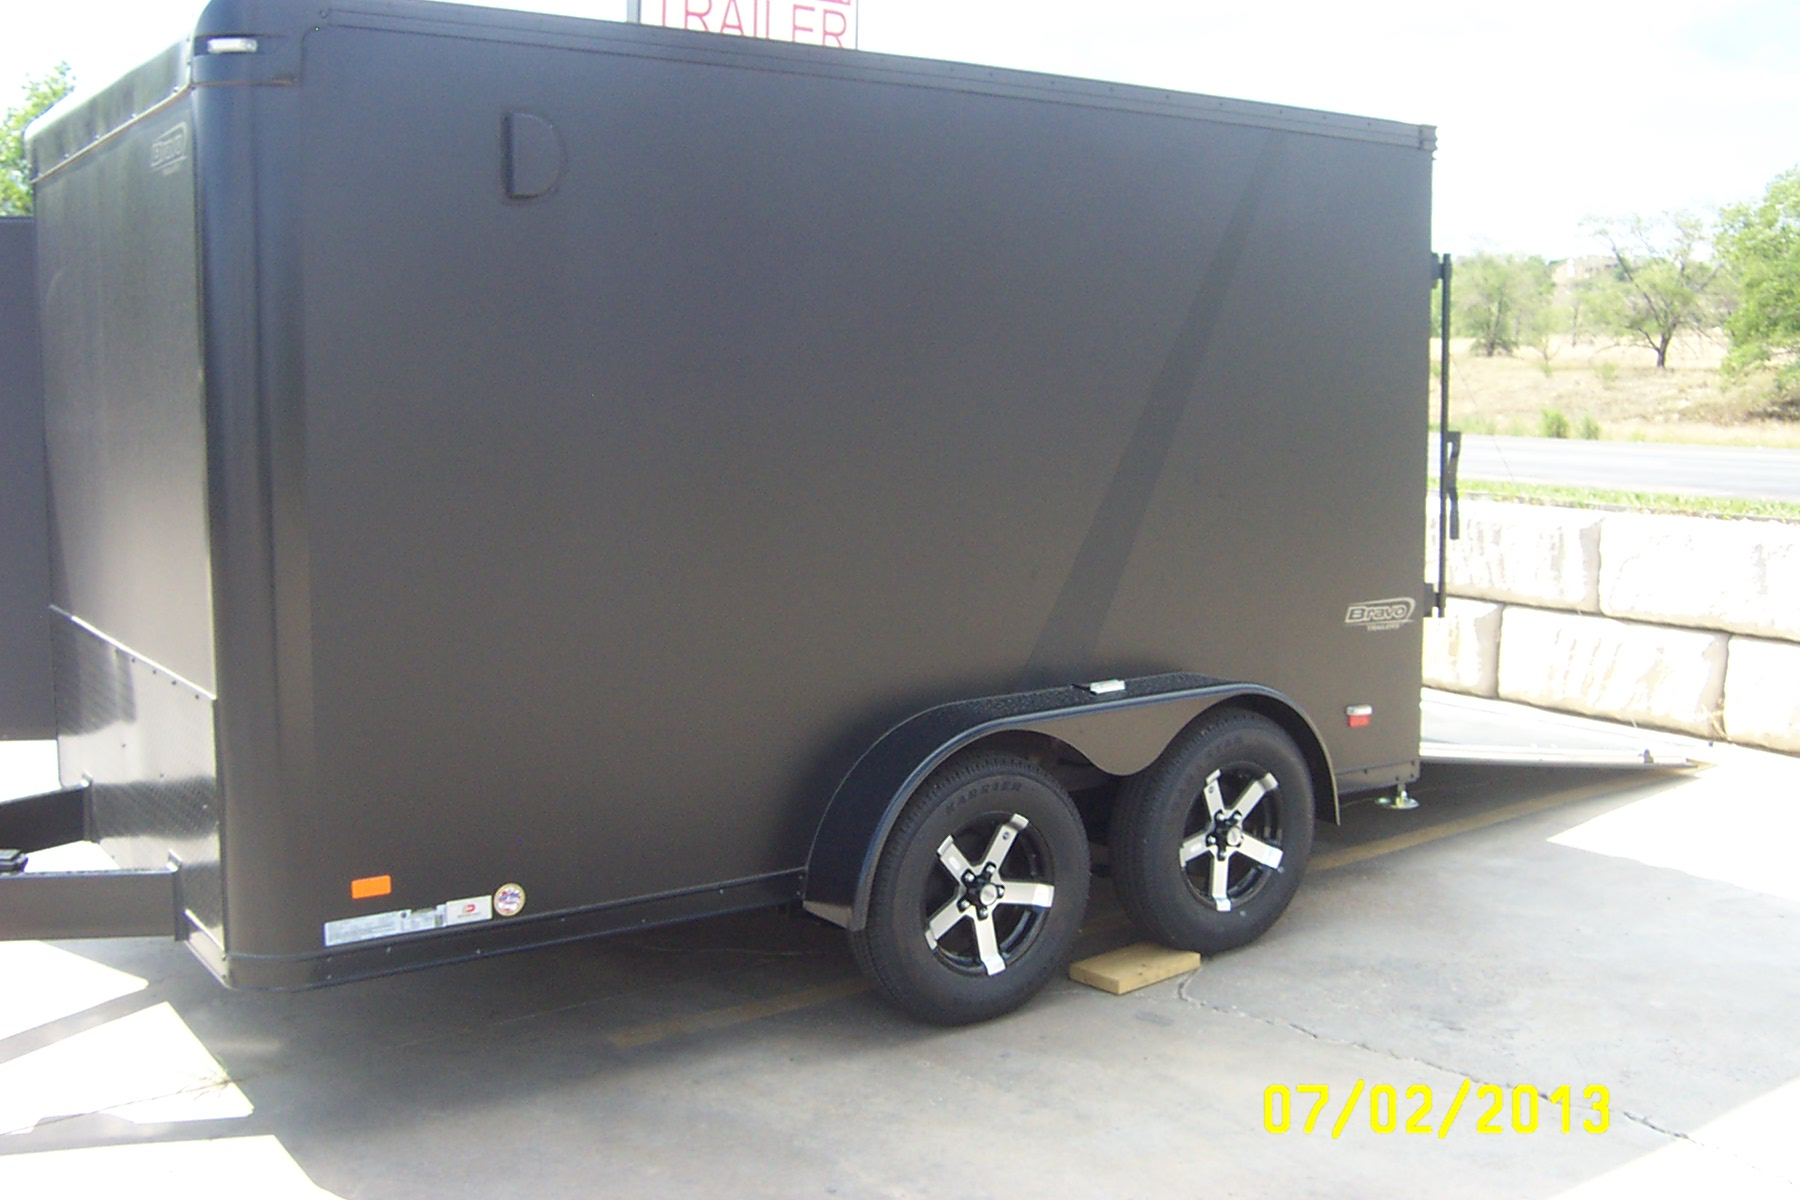 HickmanTrailer_0702_MSE005823_Blackout-T